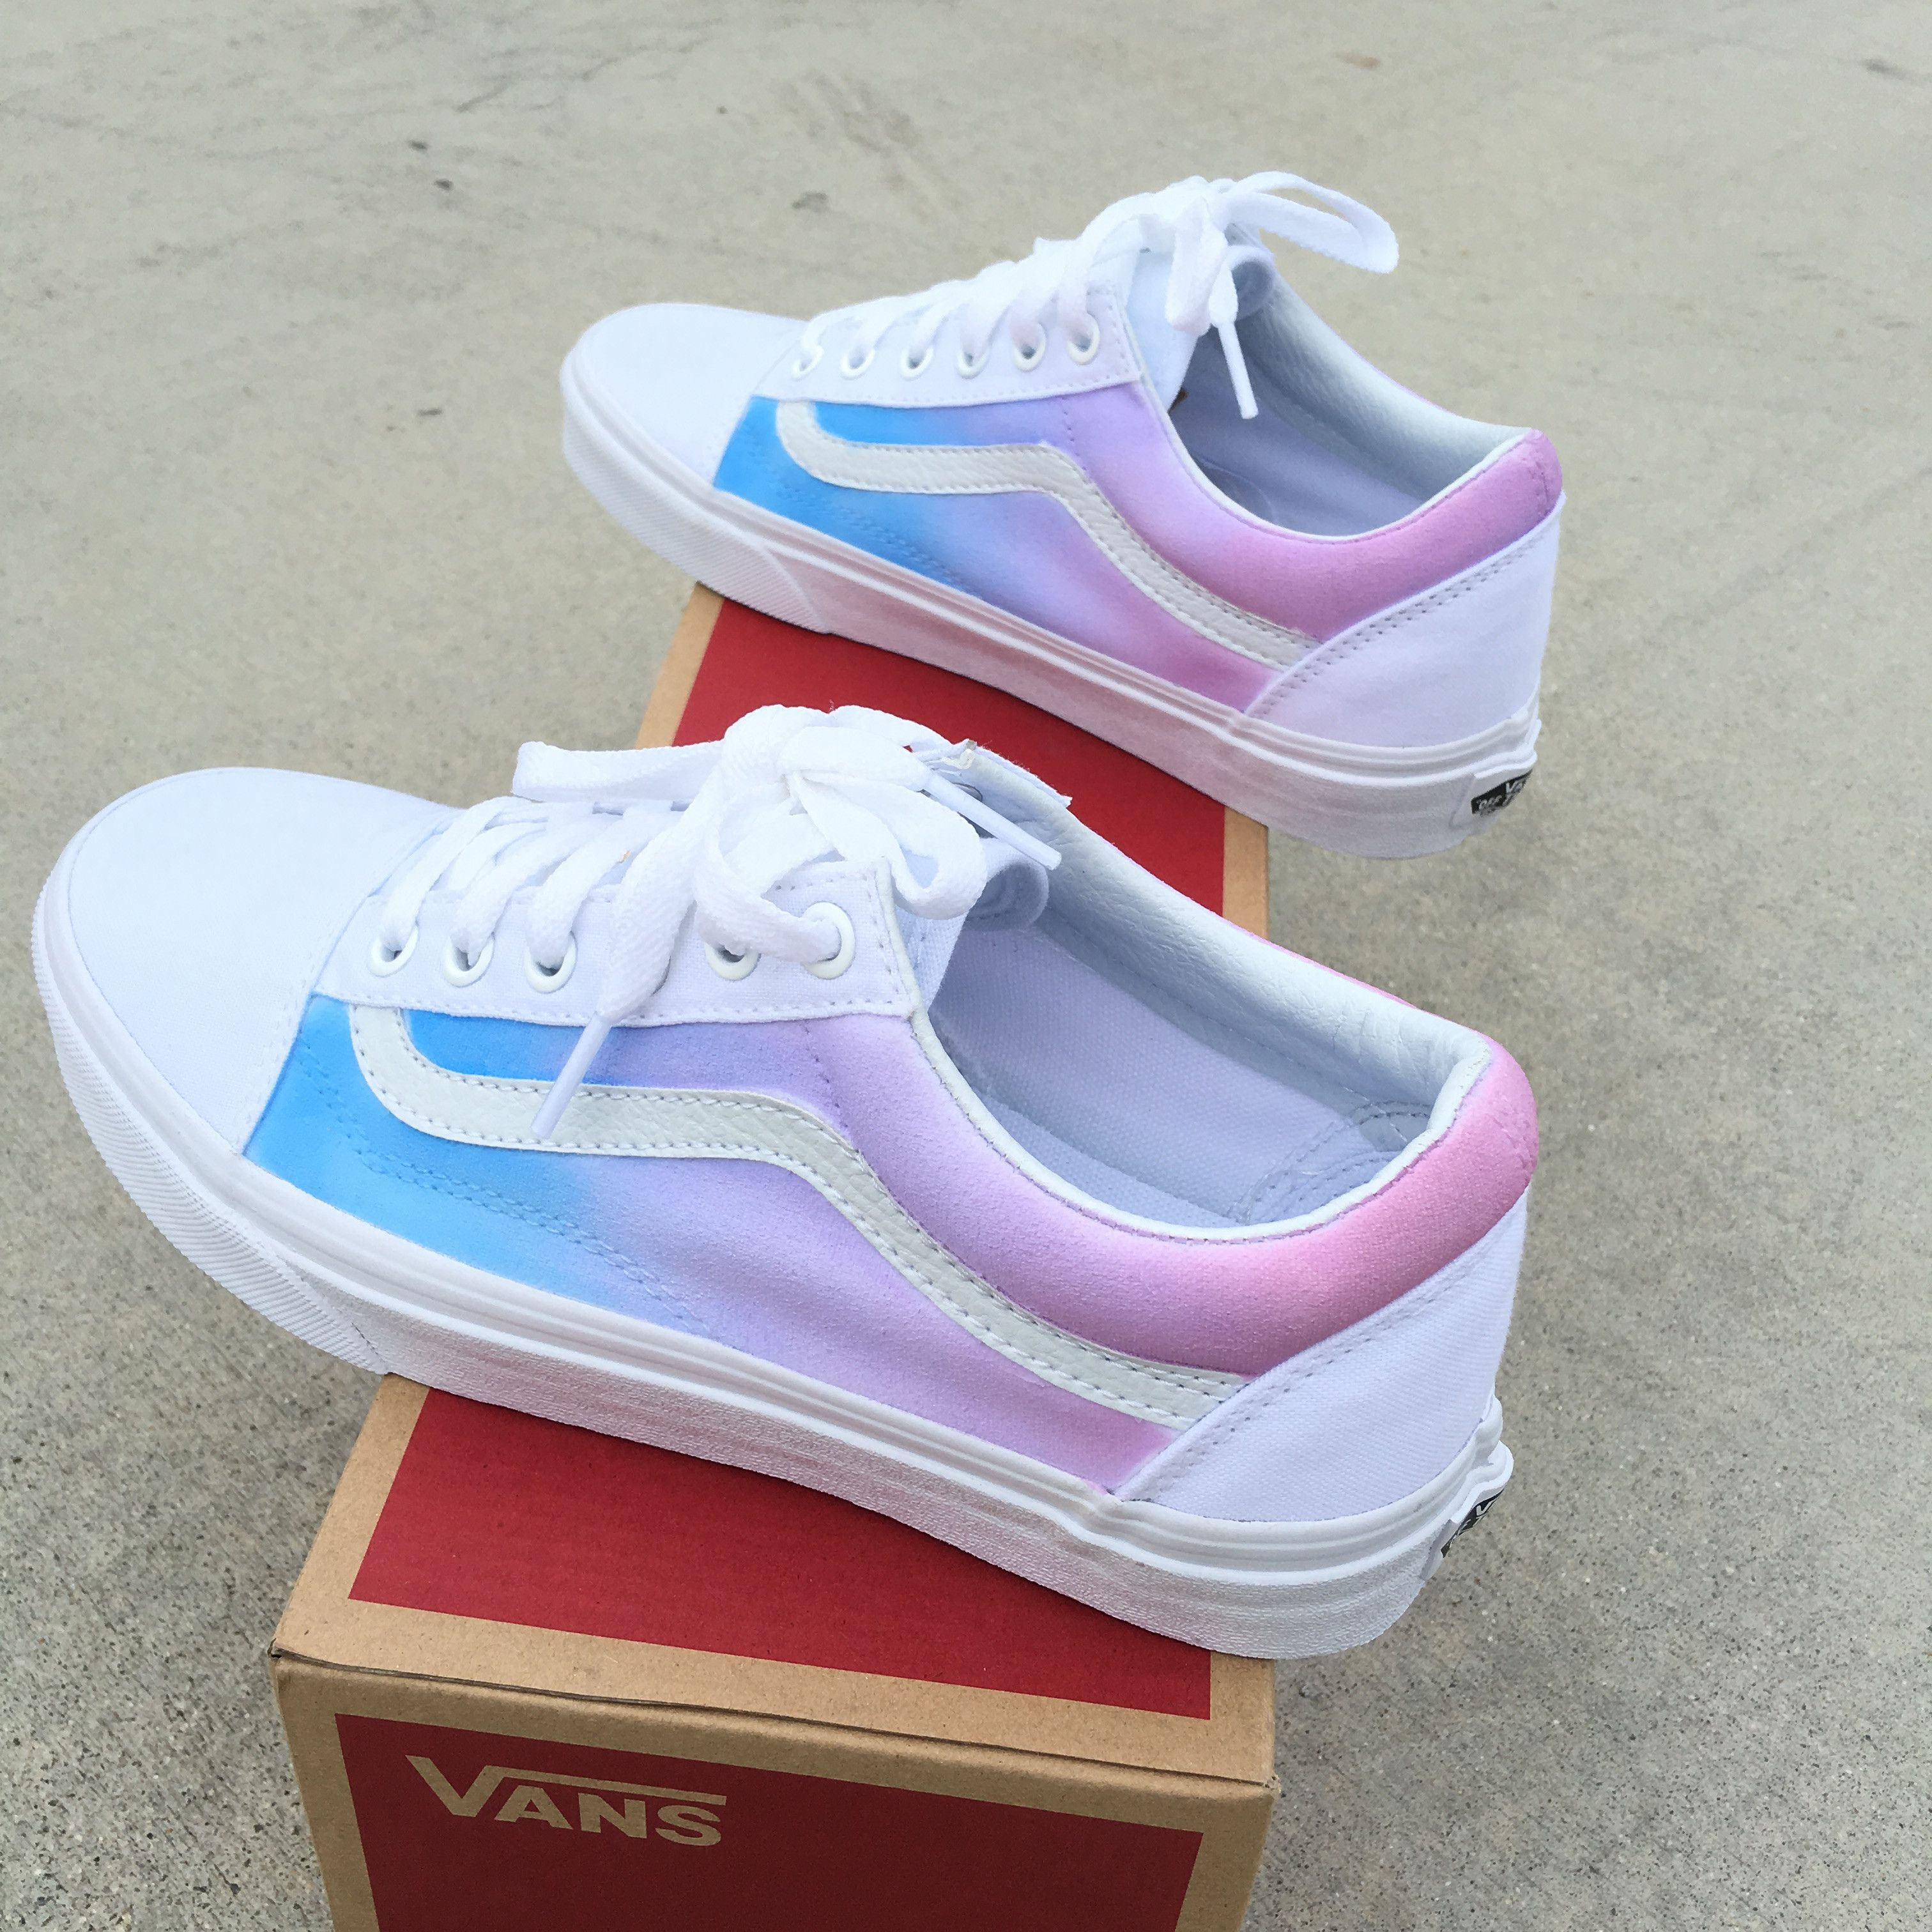 Custom Painted Vans Old Skool Sneakers  Pastel Colored Ombre Gradient is part of Shoes - These True White Vans Old Skool Sneakers have been painted with a pastel color ombre gradient on the sides of the shoes  The light blue color starts towards the front and fades to blush pink towards the back  I can paint Vans like this in any colors you want  Even on black shoes  Hand Painted  Made in USA  The paint is 100% permanent and will not come off  A longtime artist, I can do custom artwork as well  So if you have a specific design you need, please convo me to discuss  This price includes shoes+artwork Please message me with any questions! Blake Barash @bstreetshoes